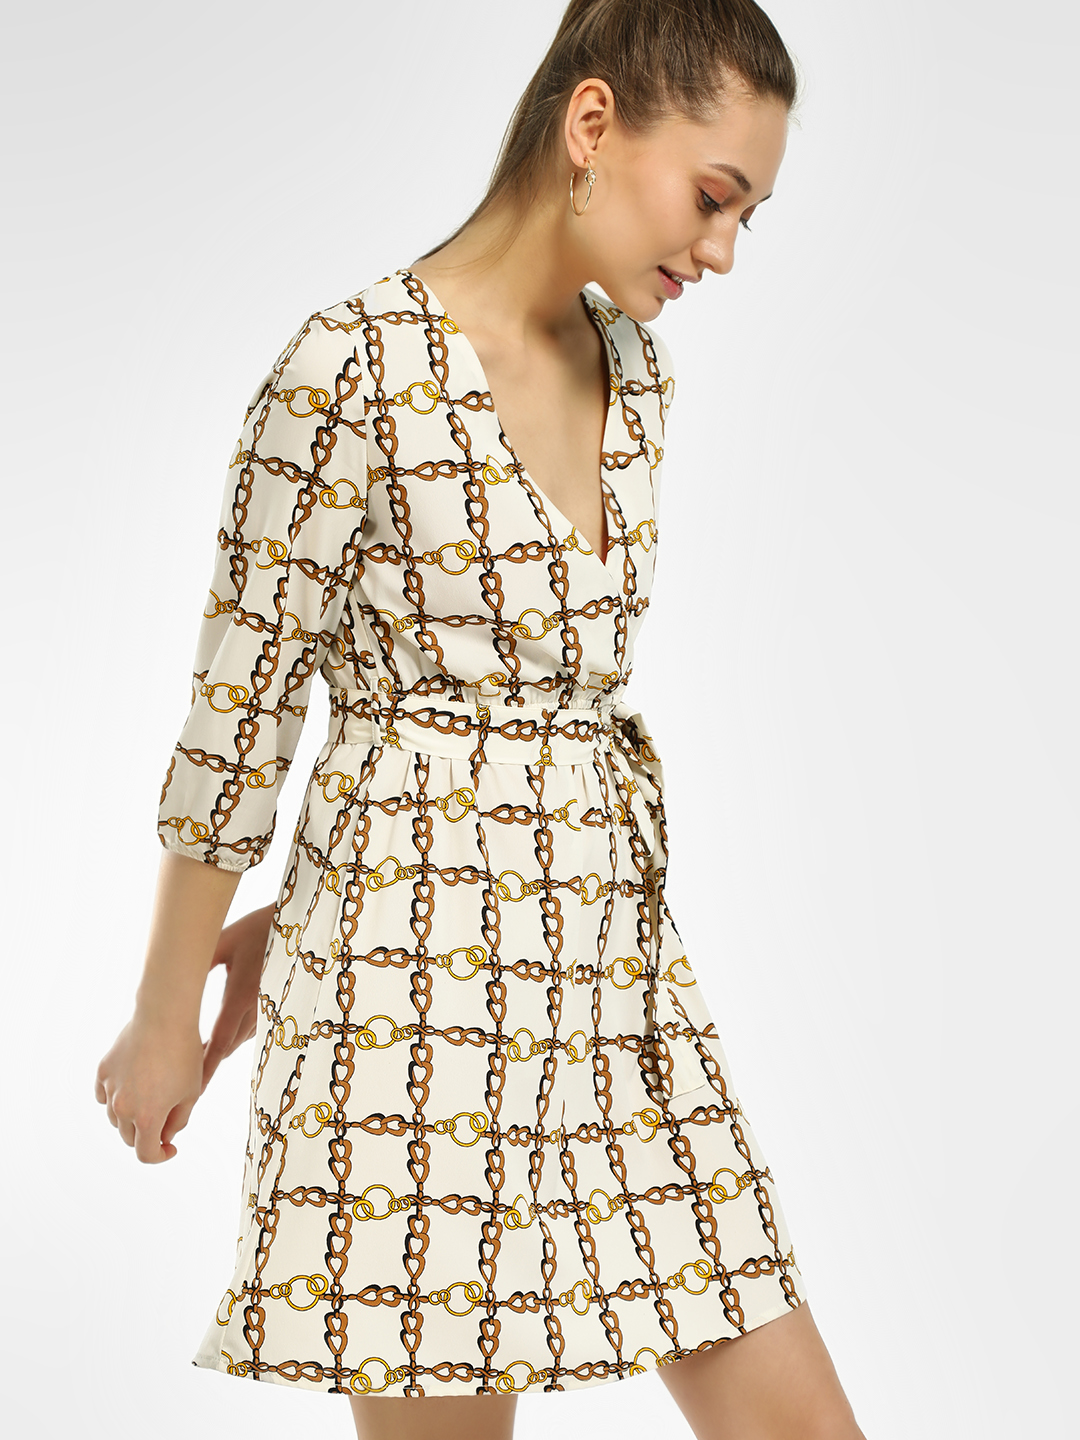 The Gud Look Print Chain Print Tie-Up Shift Dress 1